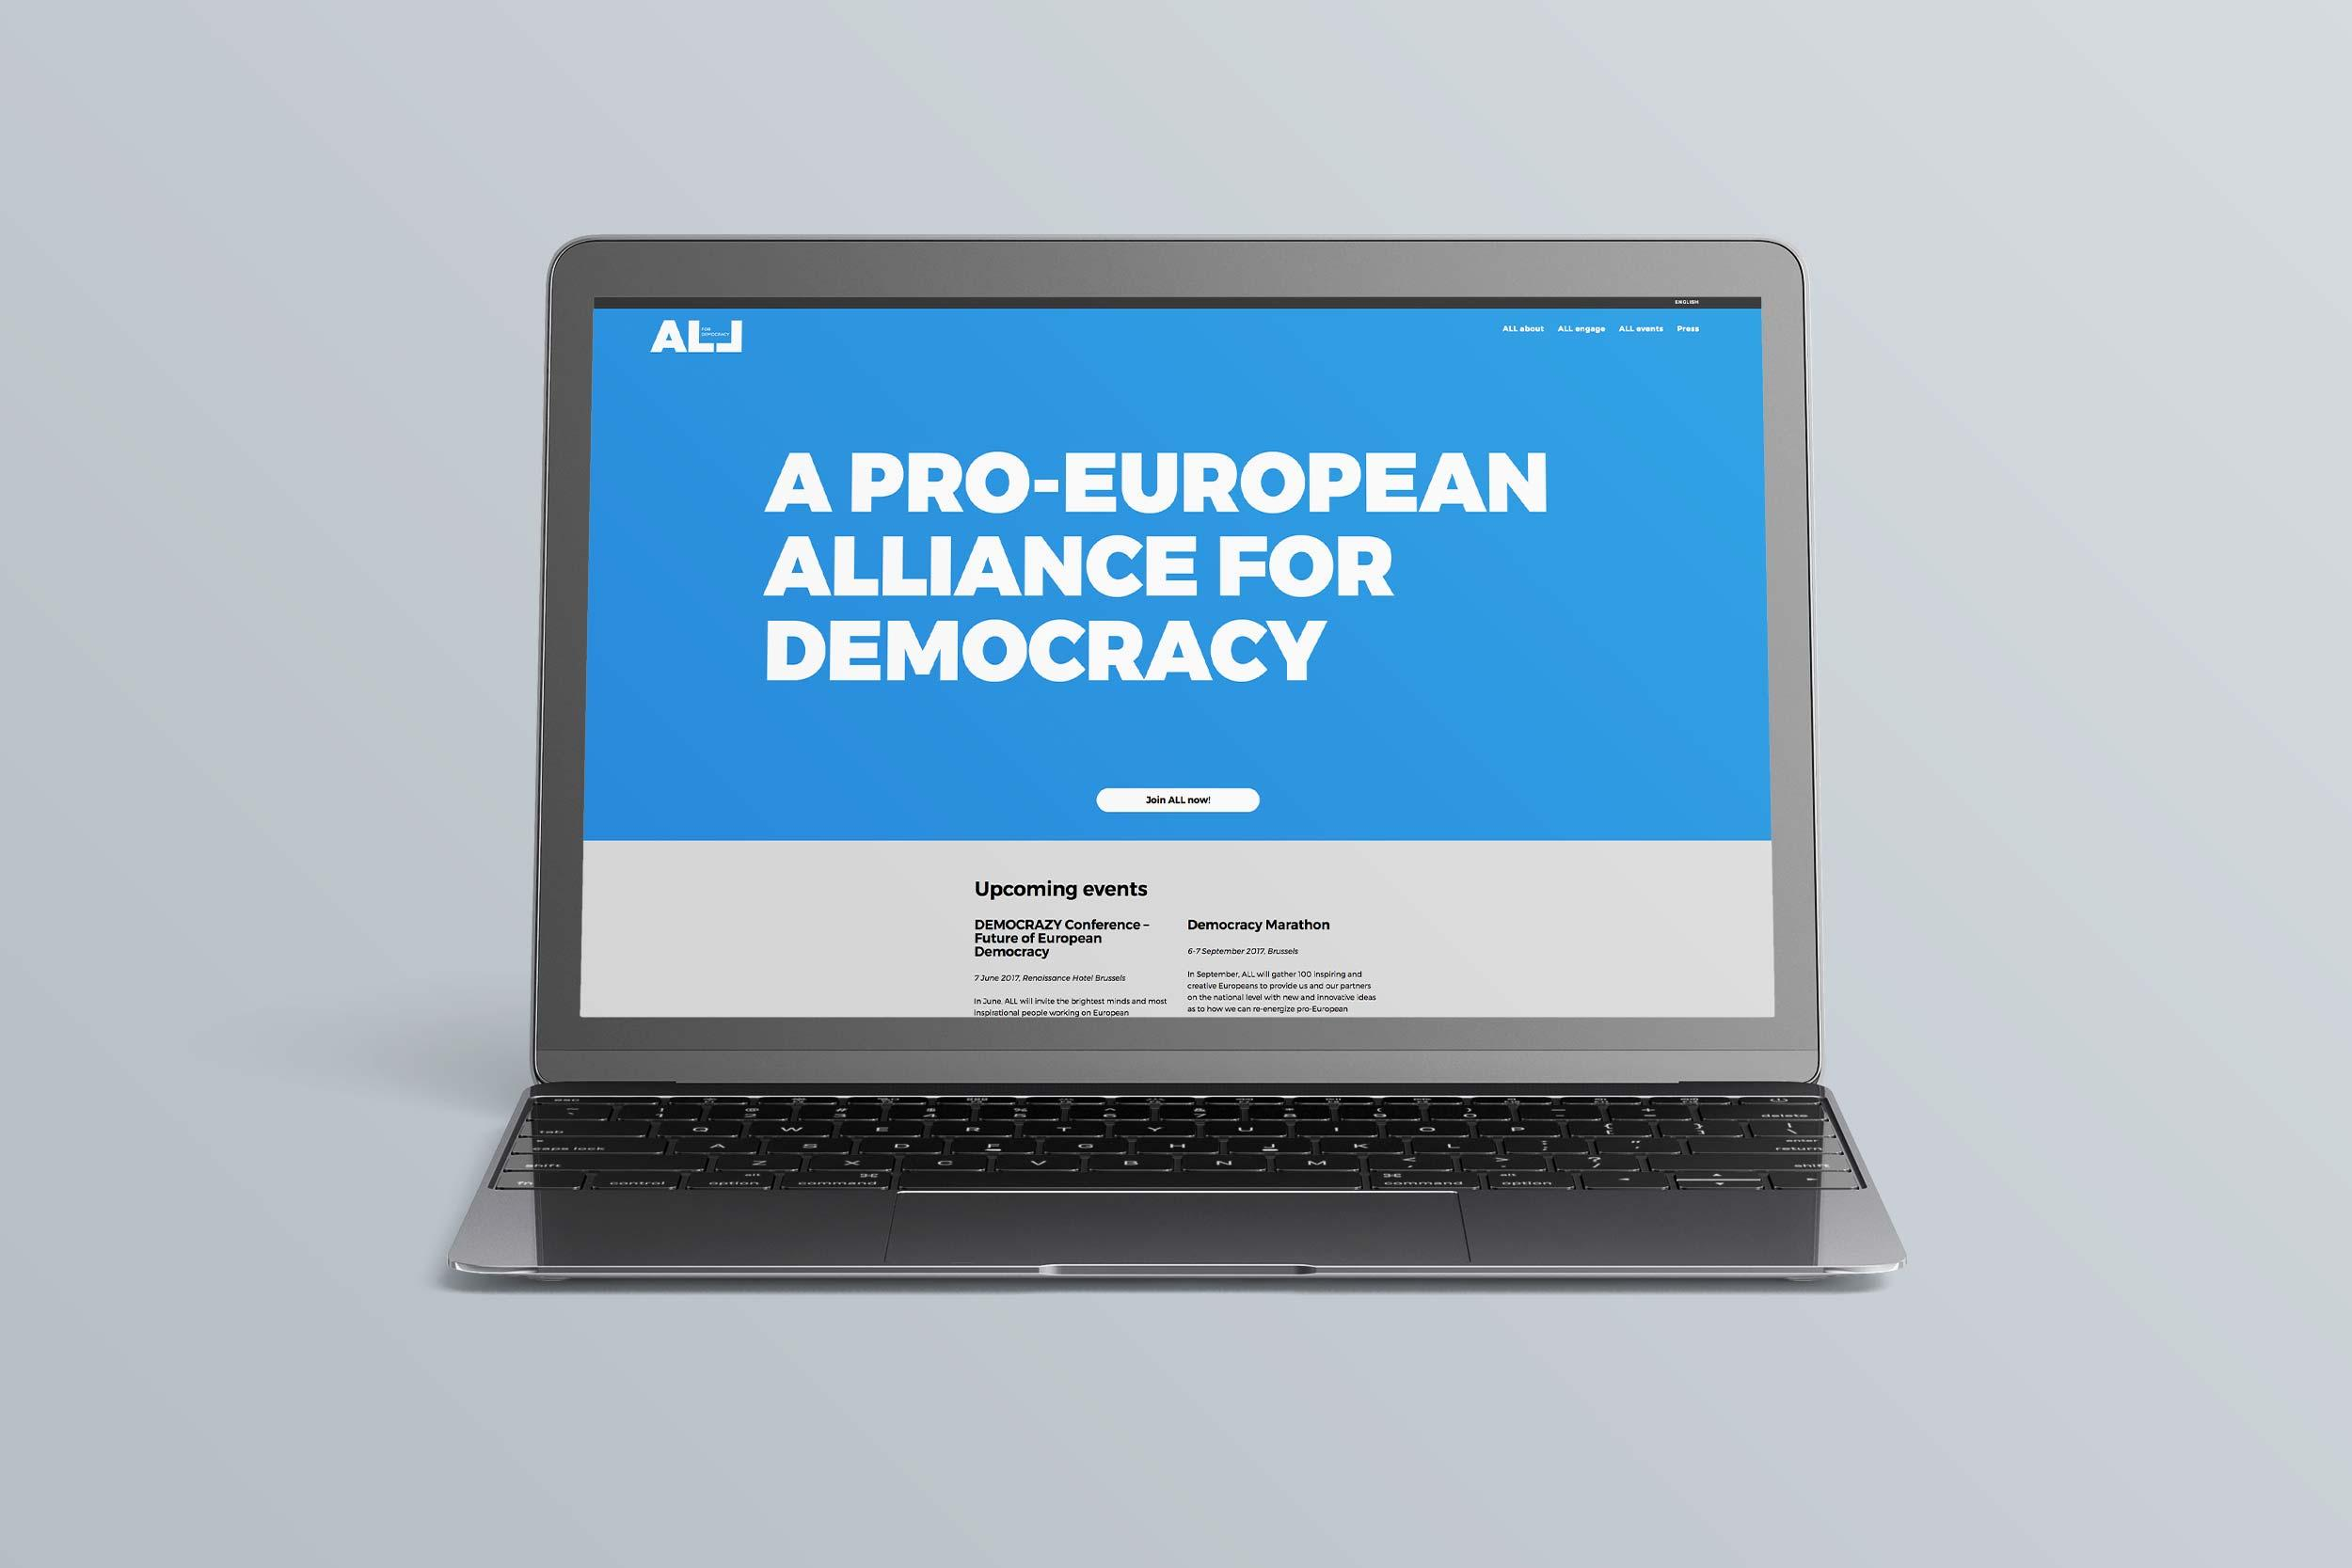 All for Democracy website frontpage on a laptop